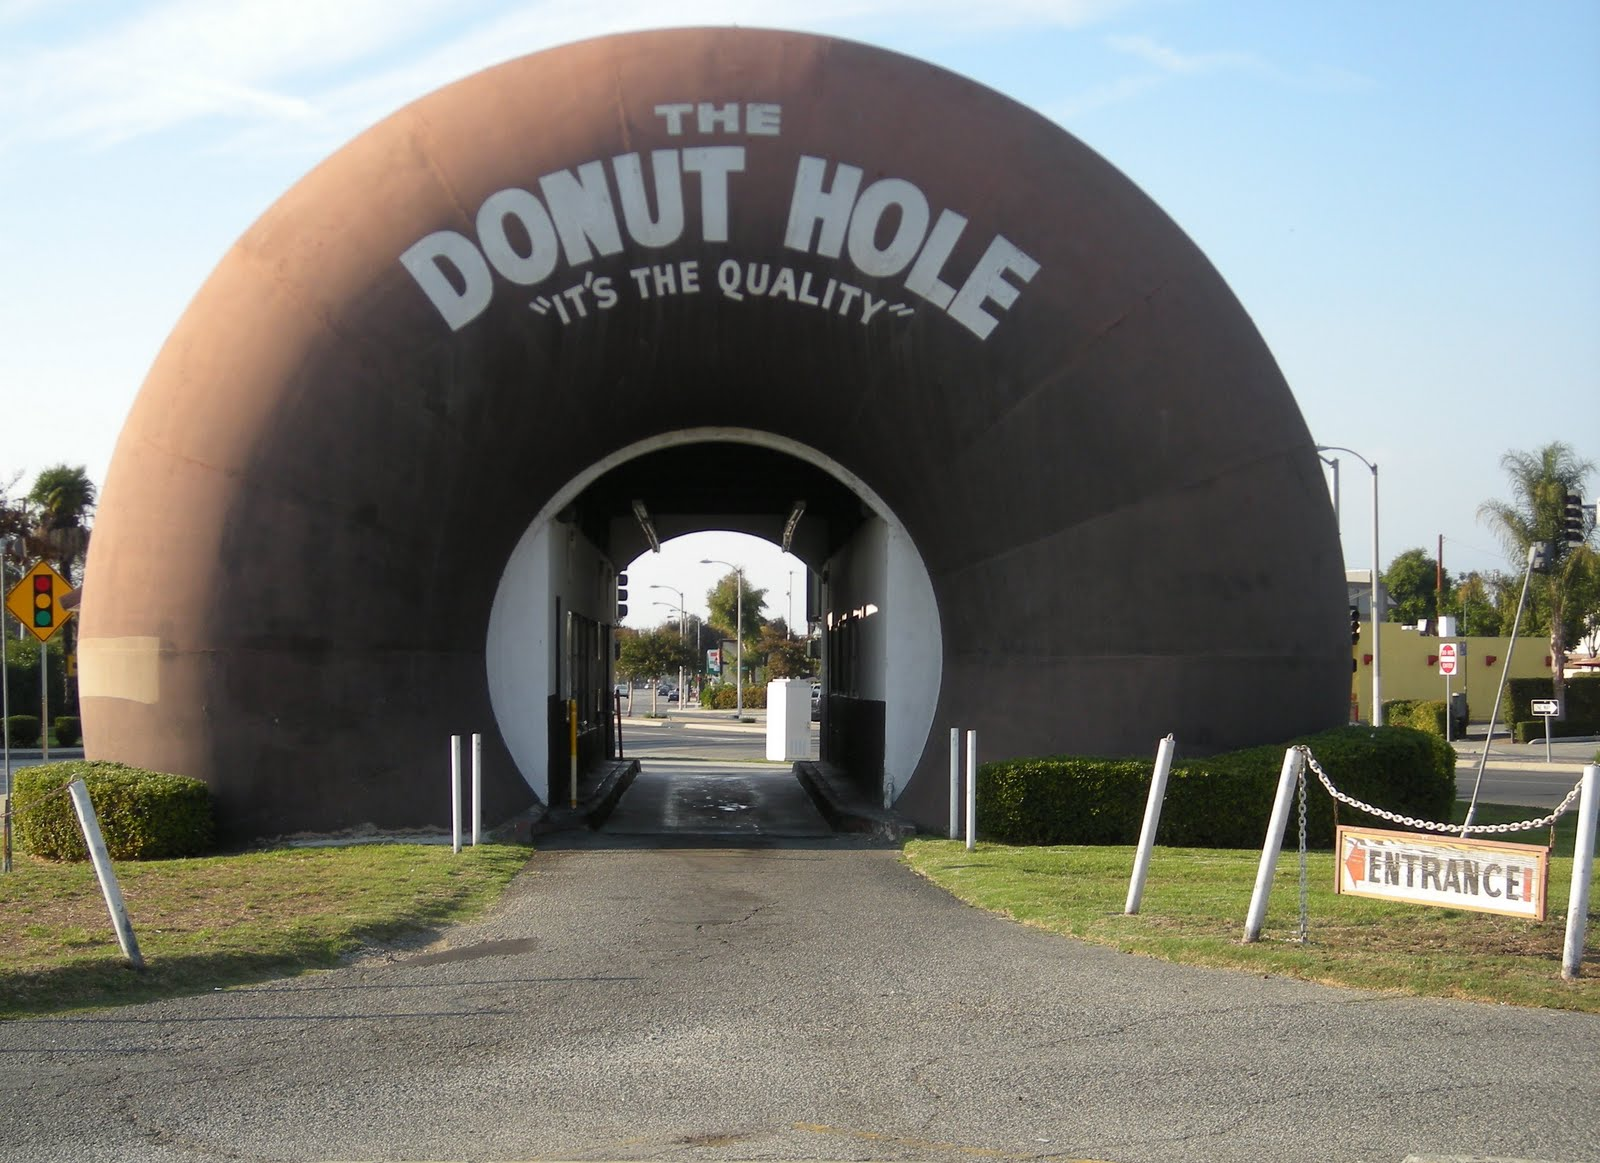 Here's the Donut Hole.  Where's the Donut?